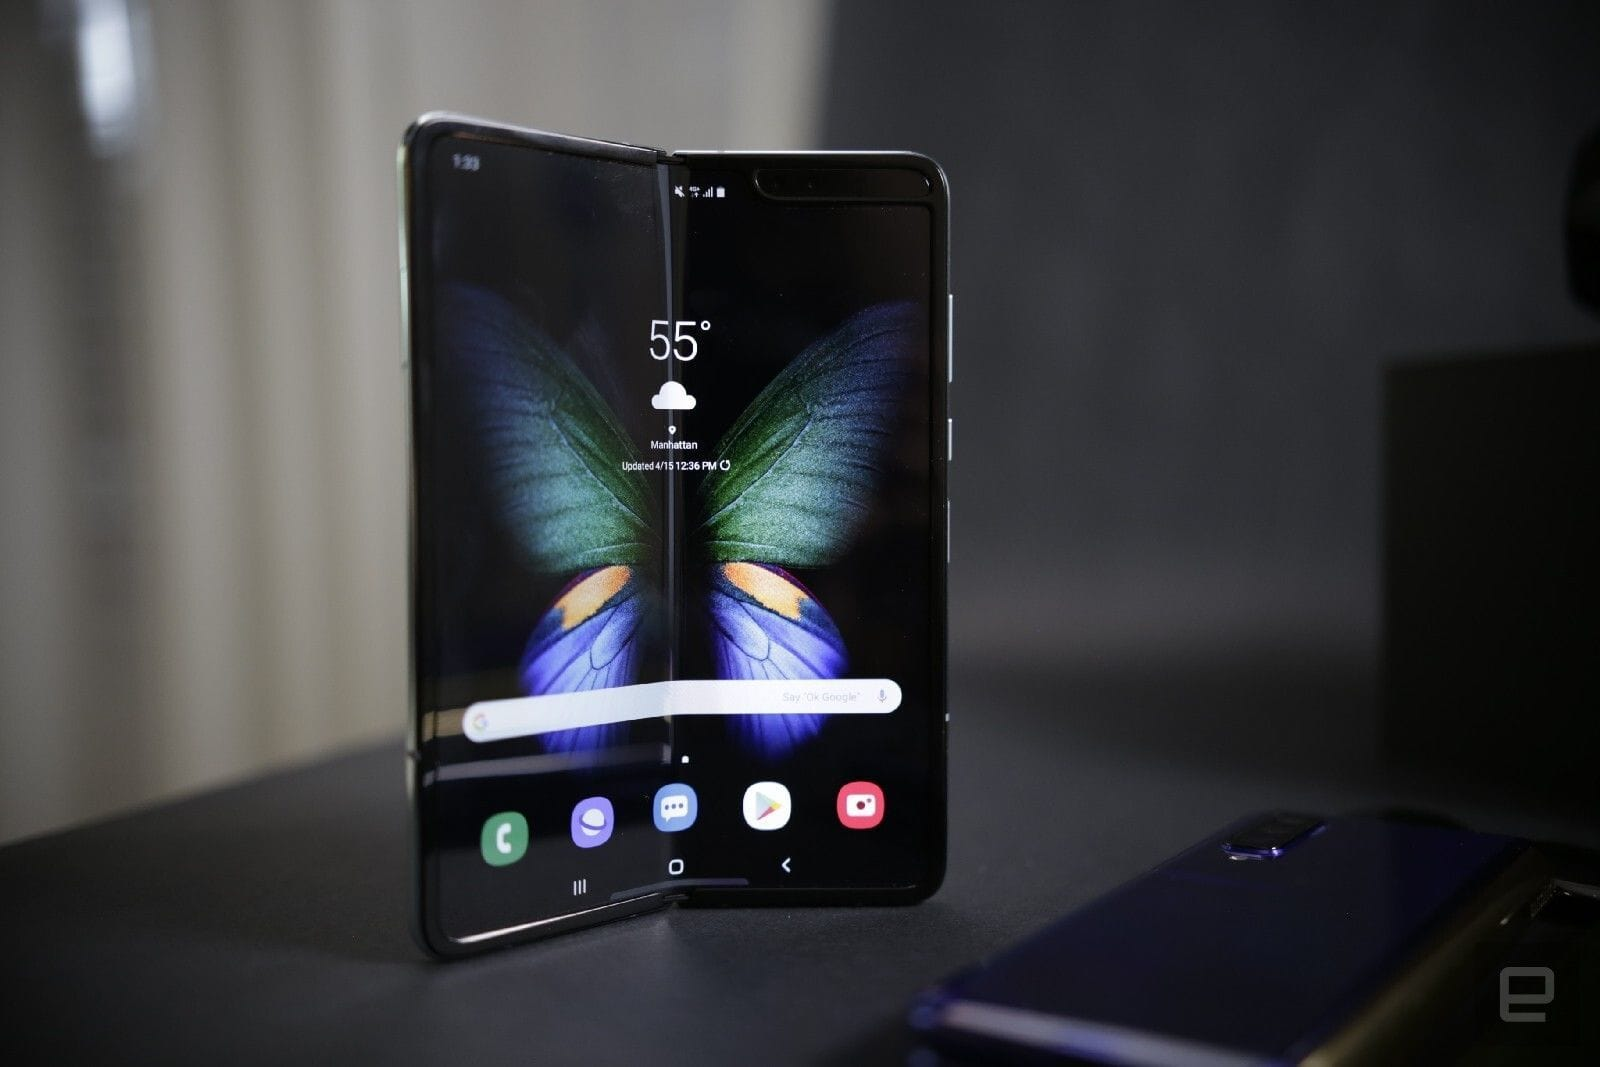 Samsung has postponed Galaxy Fold launch events in China